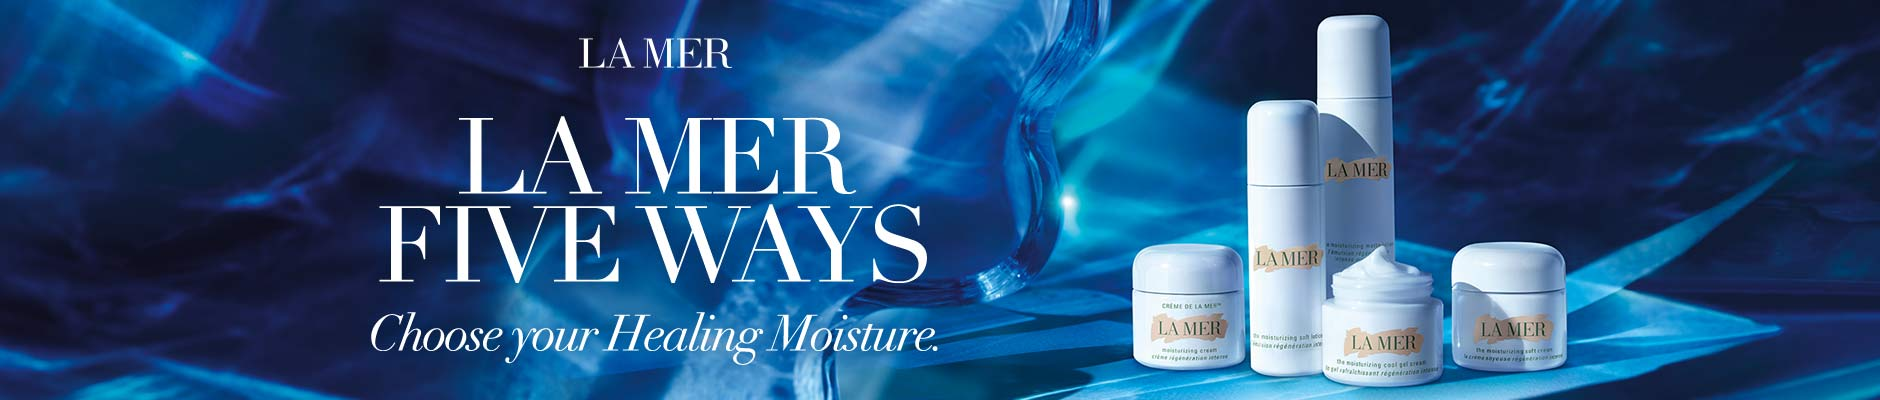 La Mer Five Ways, choose your healing moisture